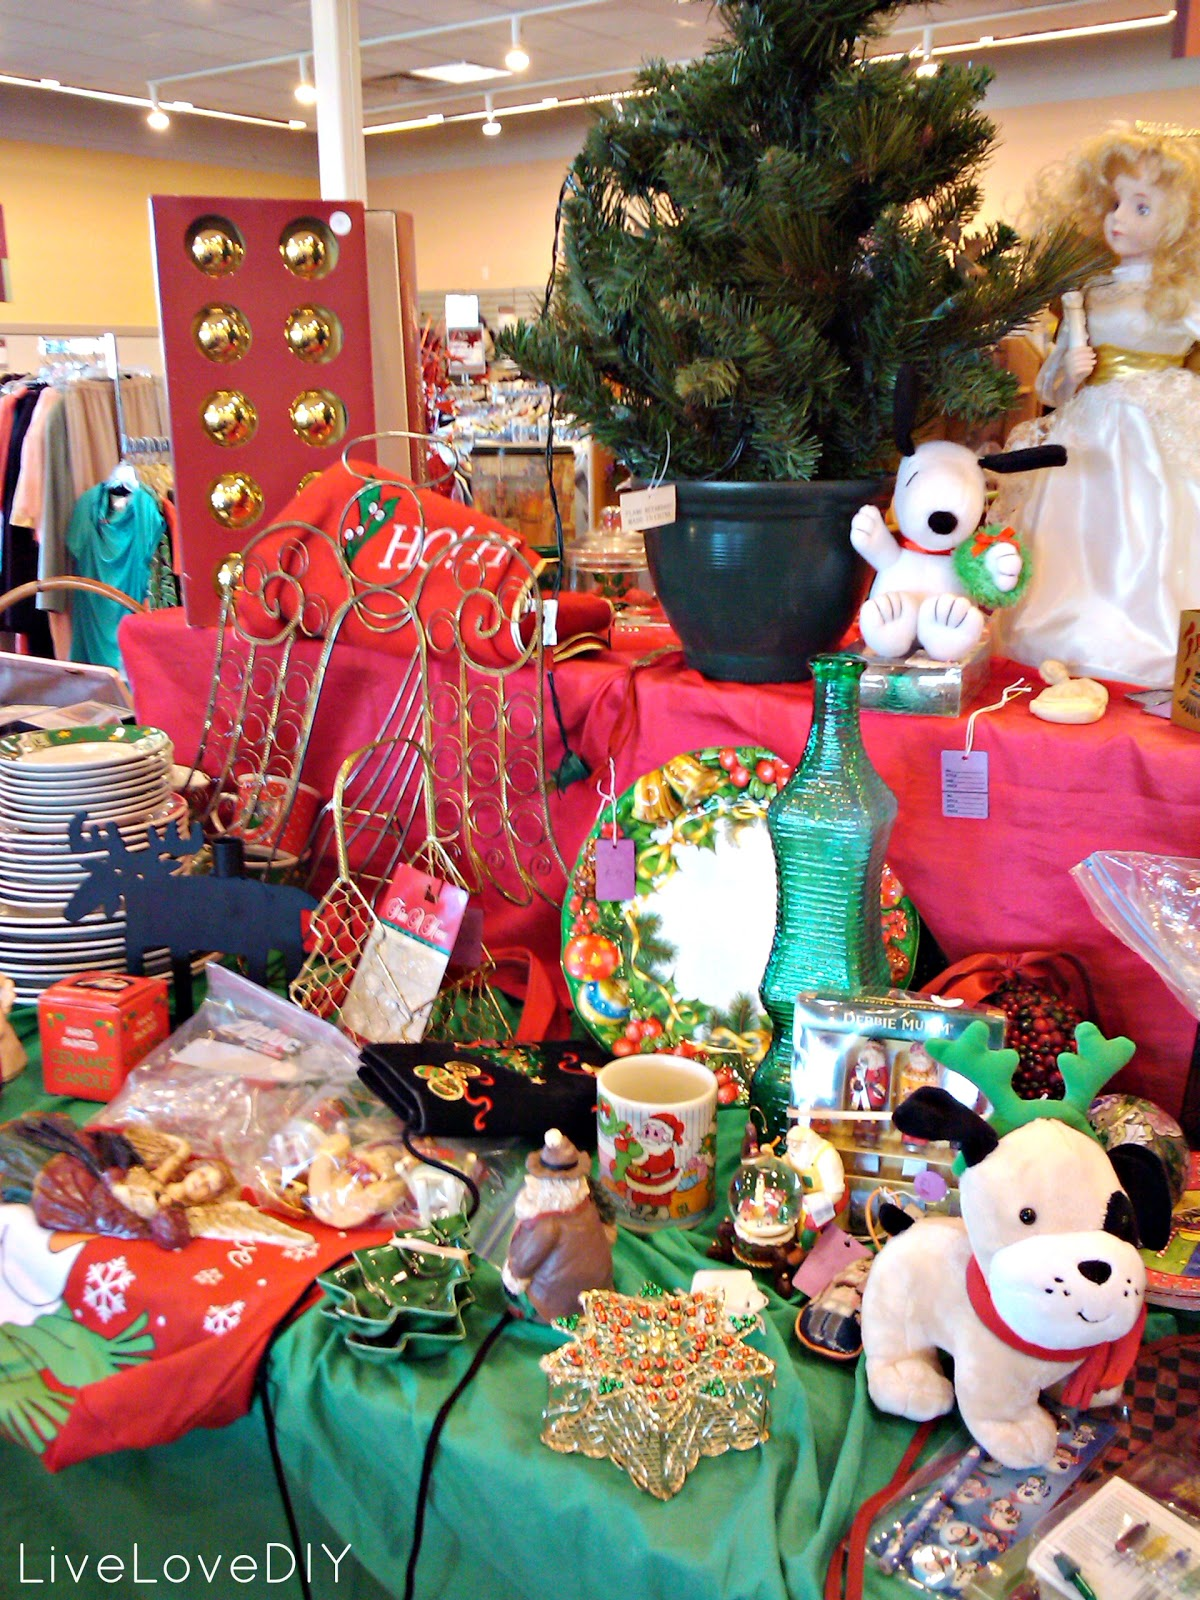 livelovediy how to shop at a thrift store for christmas decor - Where To Buy Christmas Decorations